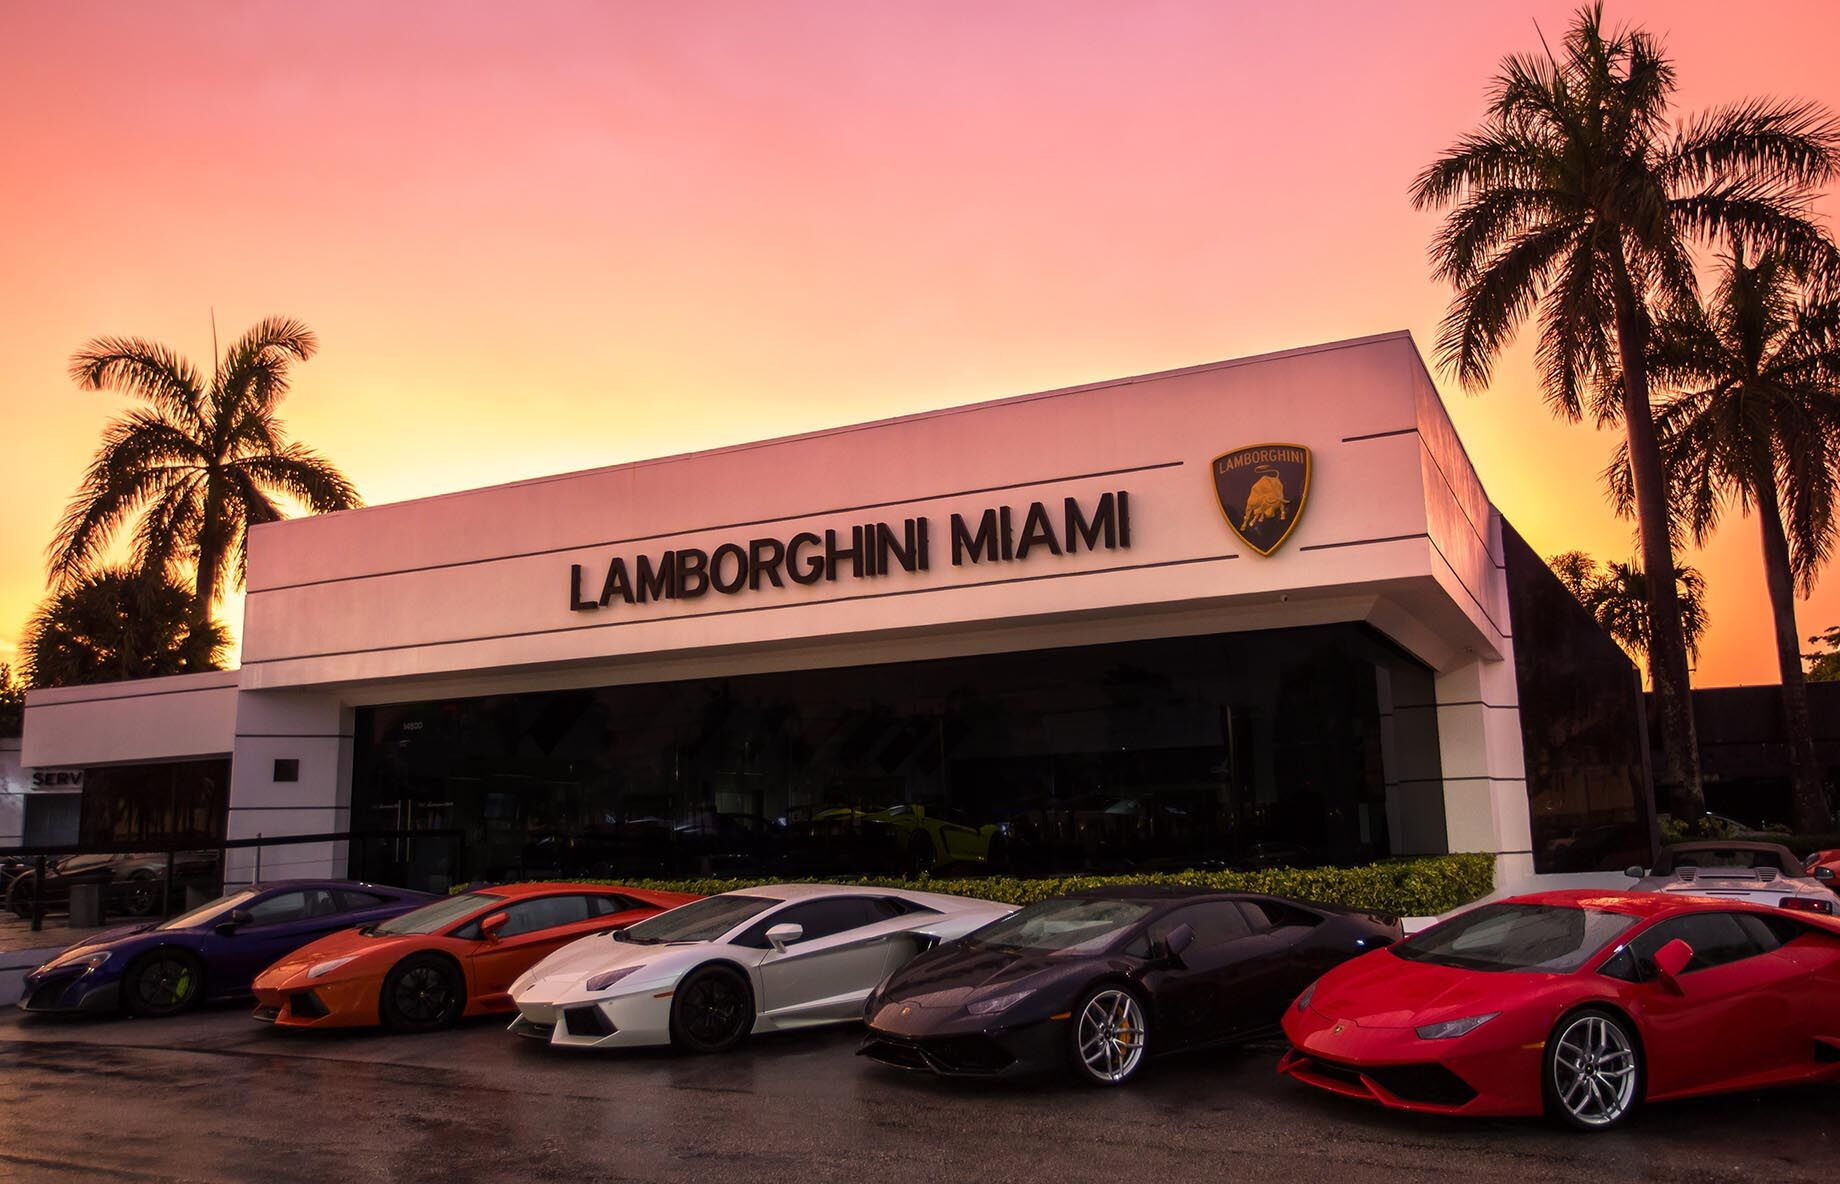 Lamborghini Dealership North Miami Beach FL Used Cars - Lamborghini car dealership